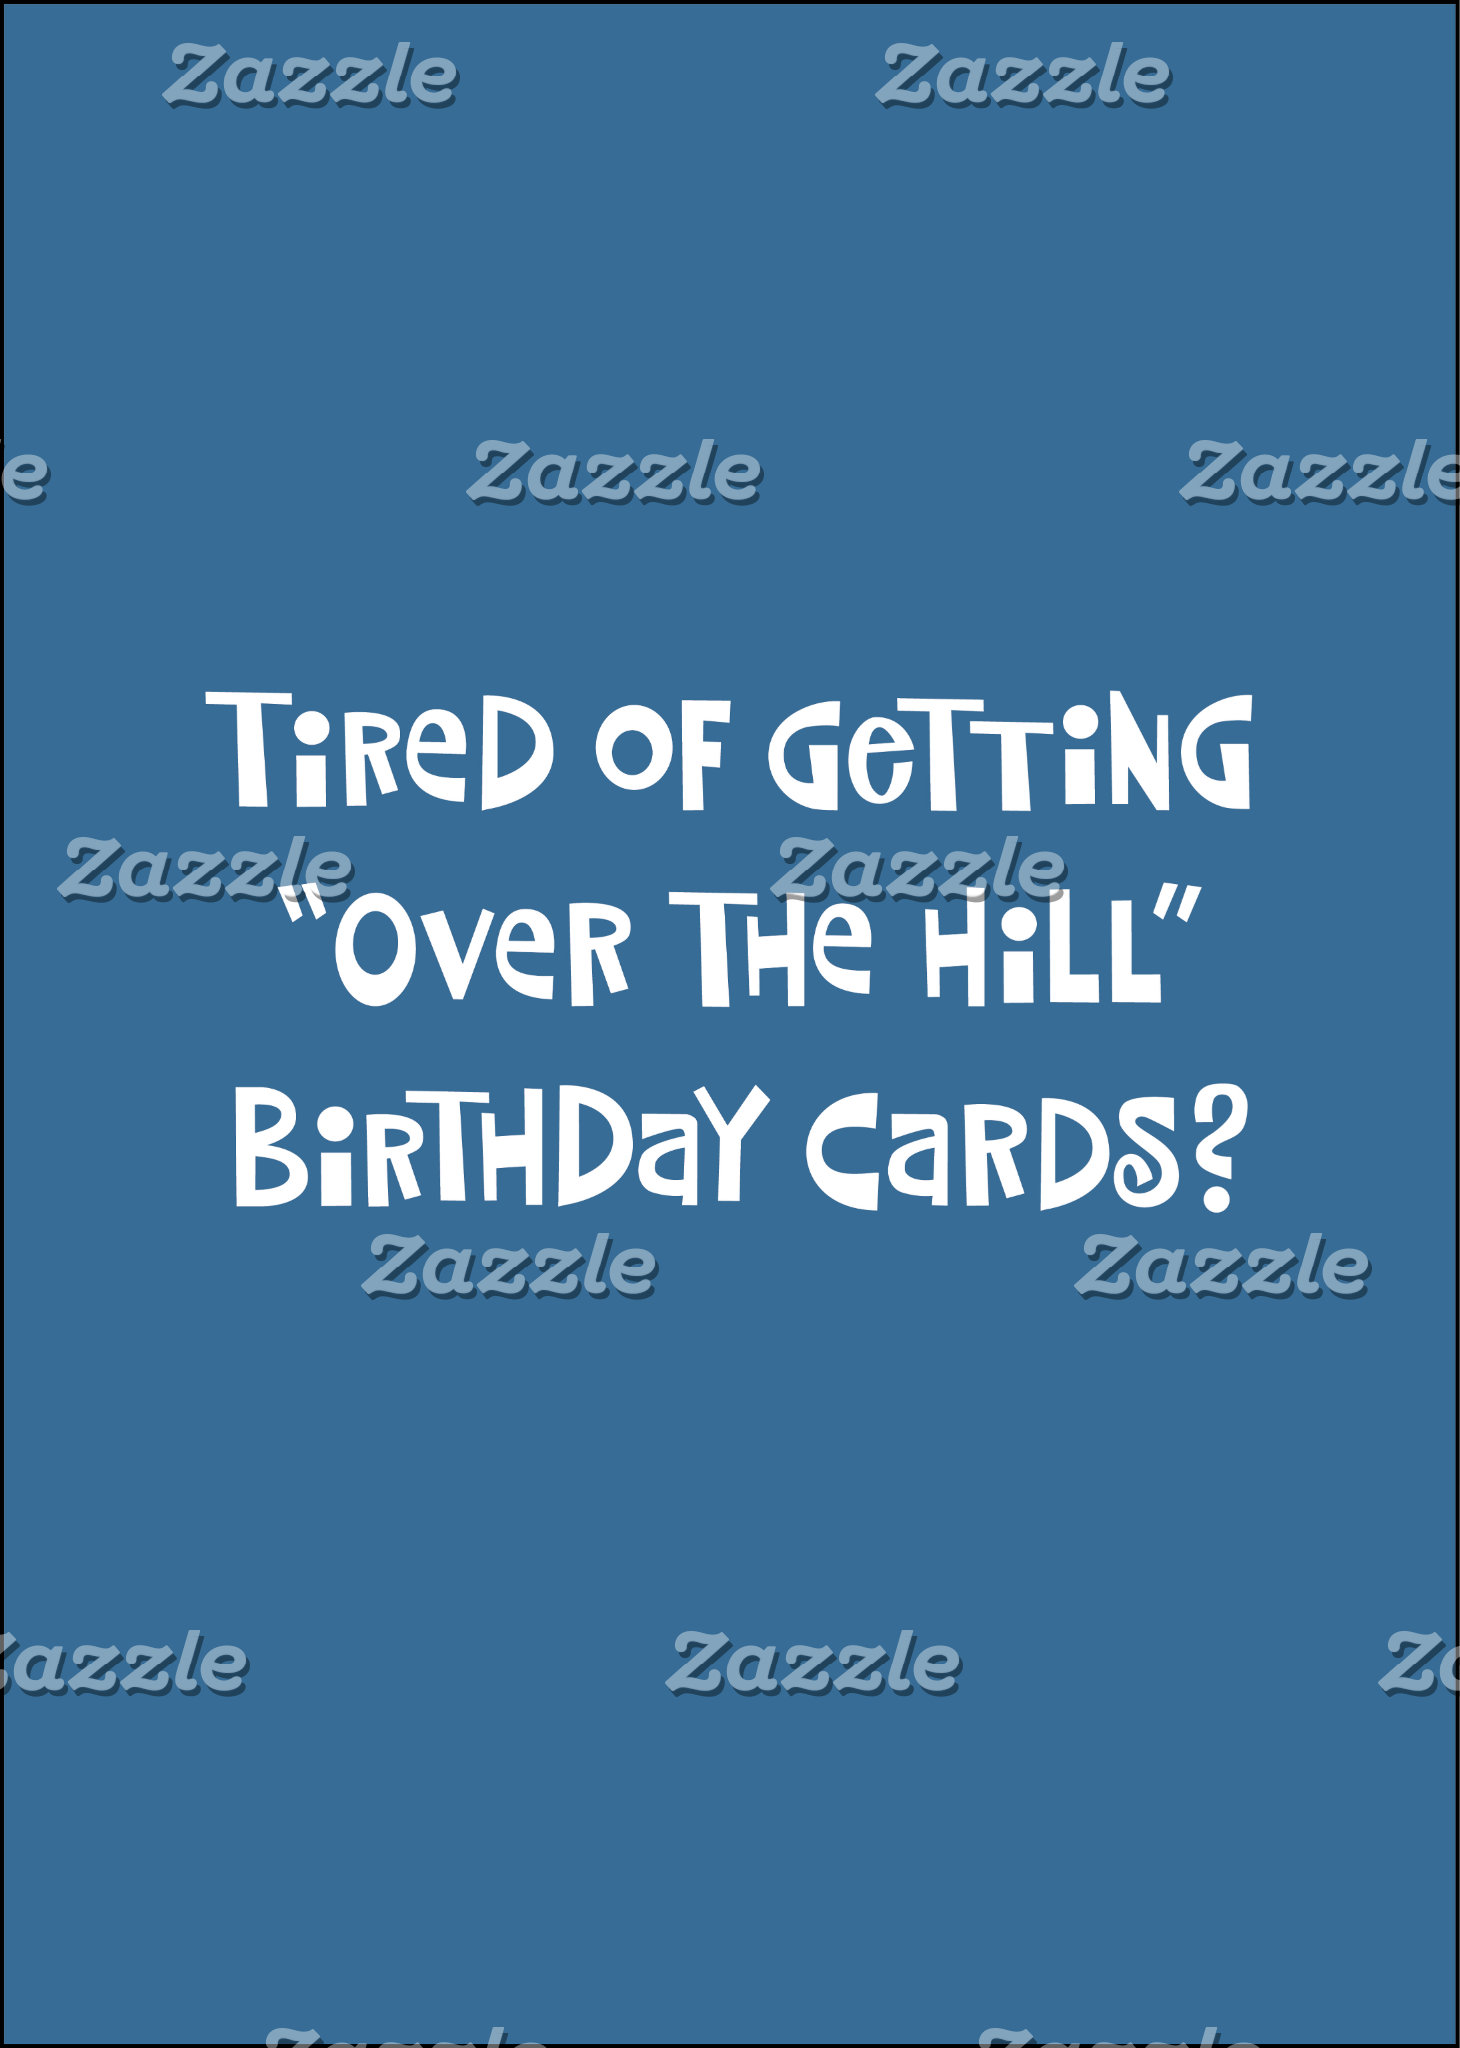 Birthday_Cards